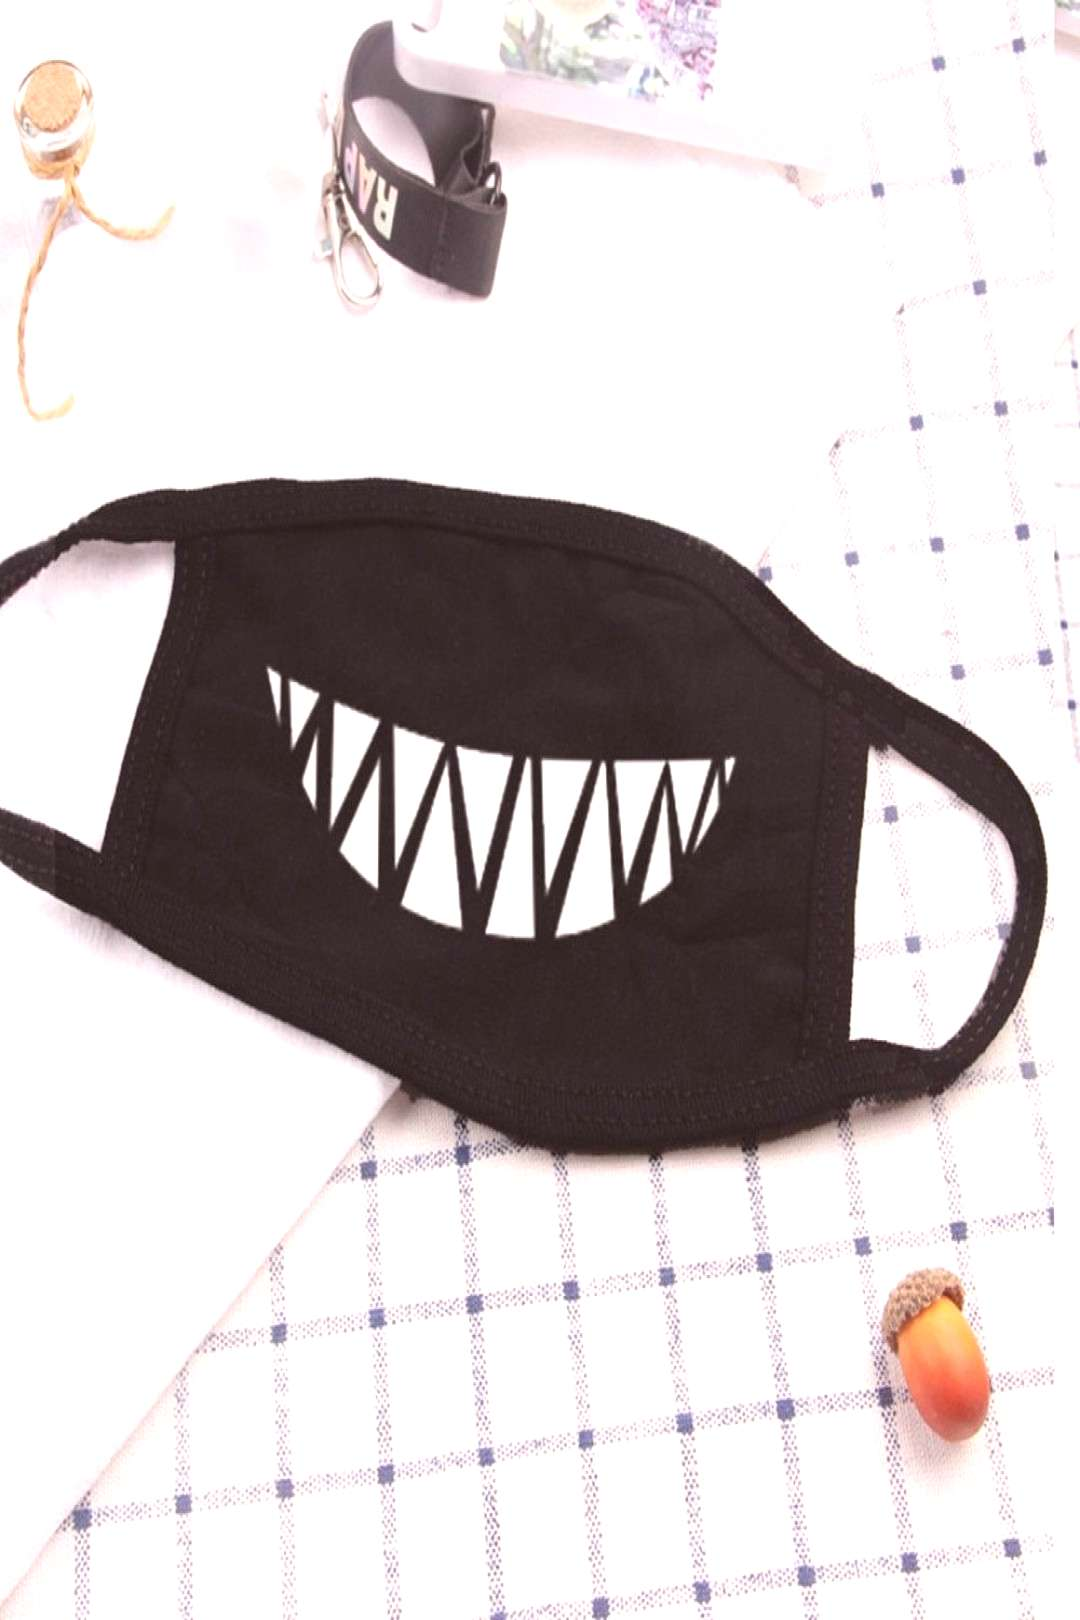 Dustproof Mouth Mask Korean Pop Anime Mask Cotton Face Mouth Mask Cartoon Face Reusable Fabric Anti